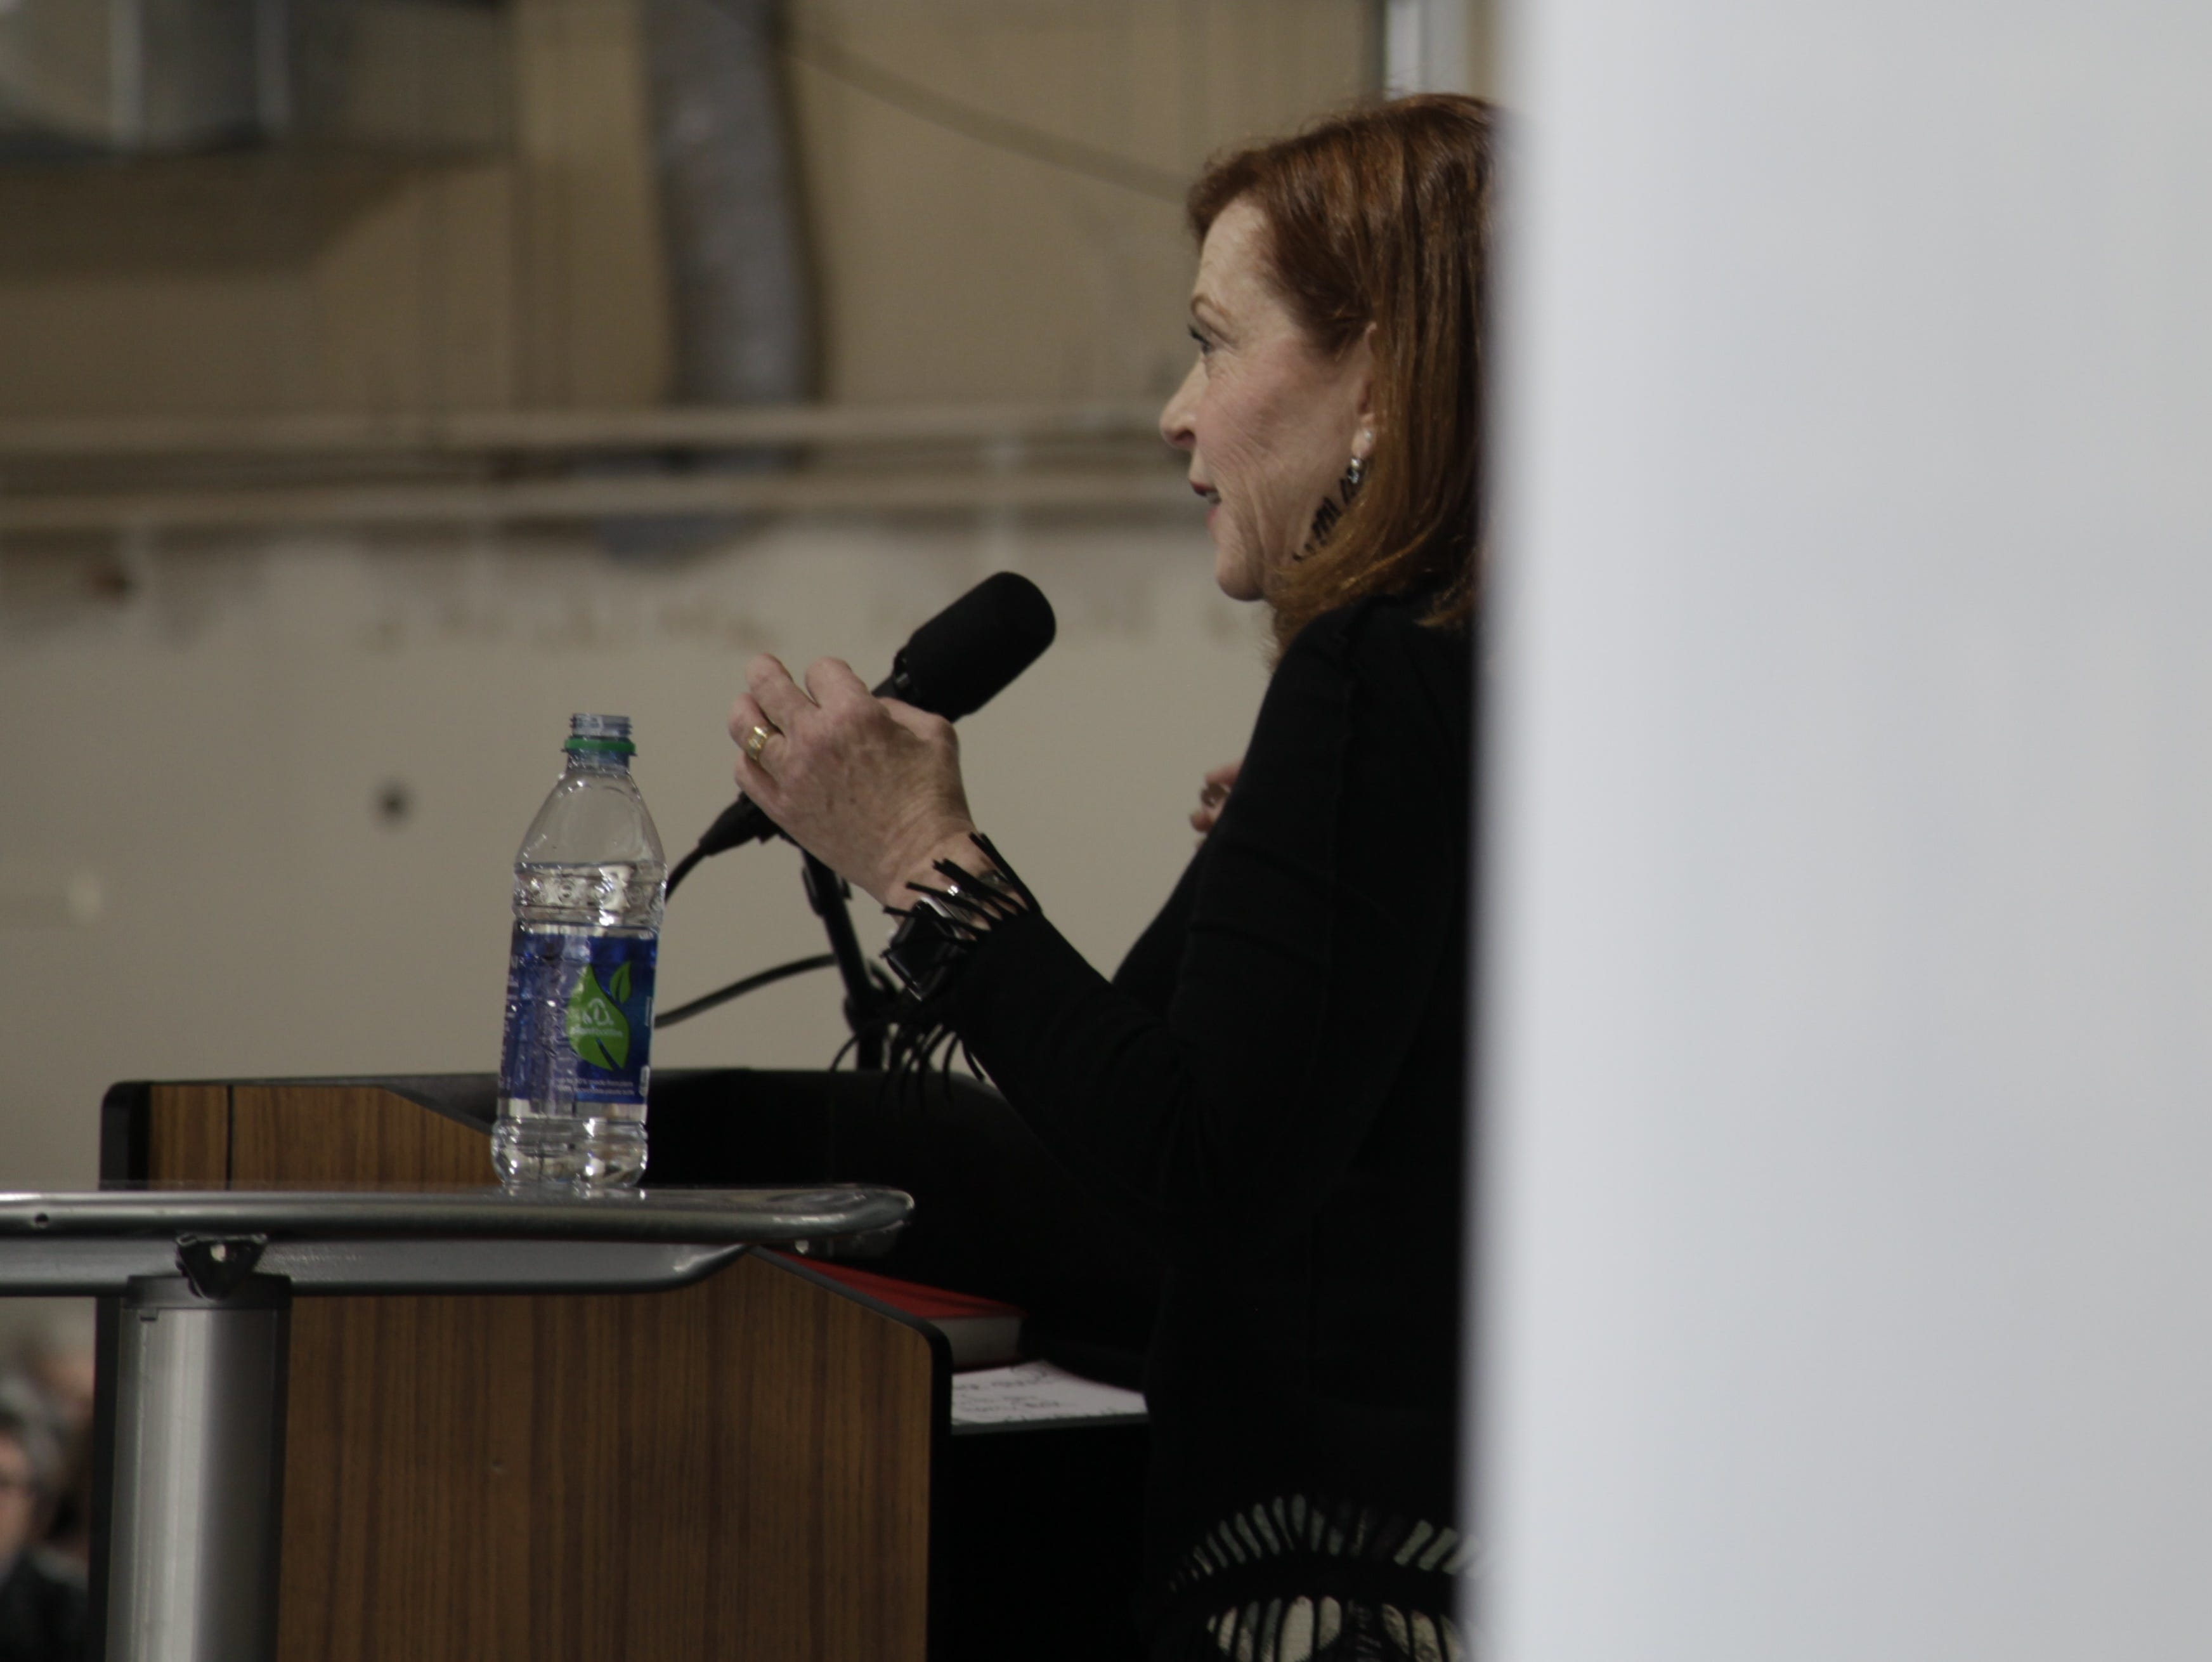 Author Susan Orlean spoke at the DSM Book Festival, which attracted book lovers downtown on Saturday, March 30, 2019.